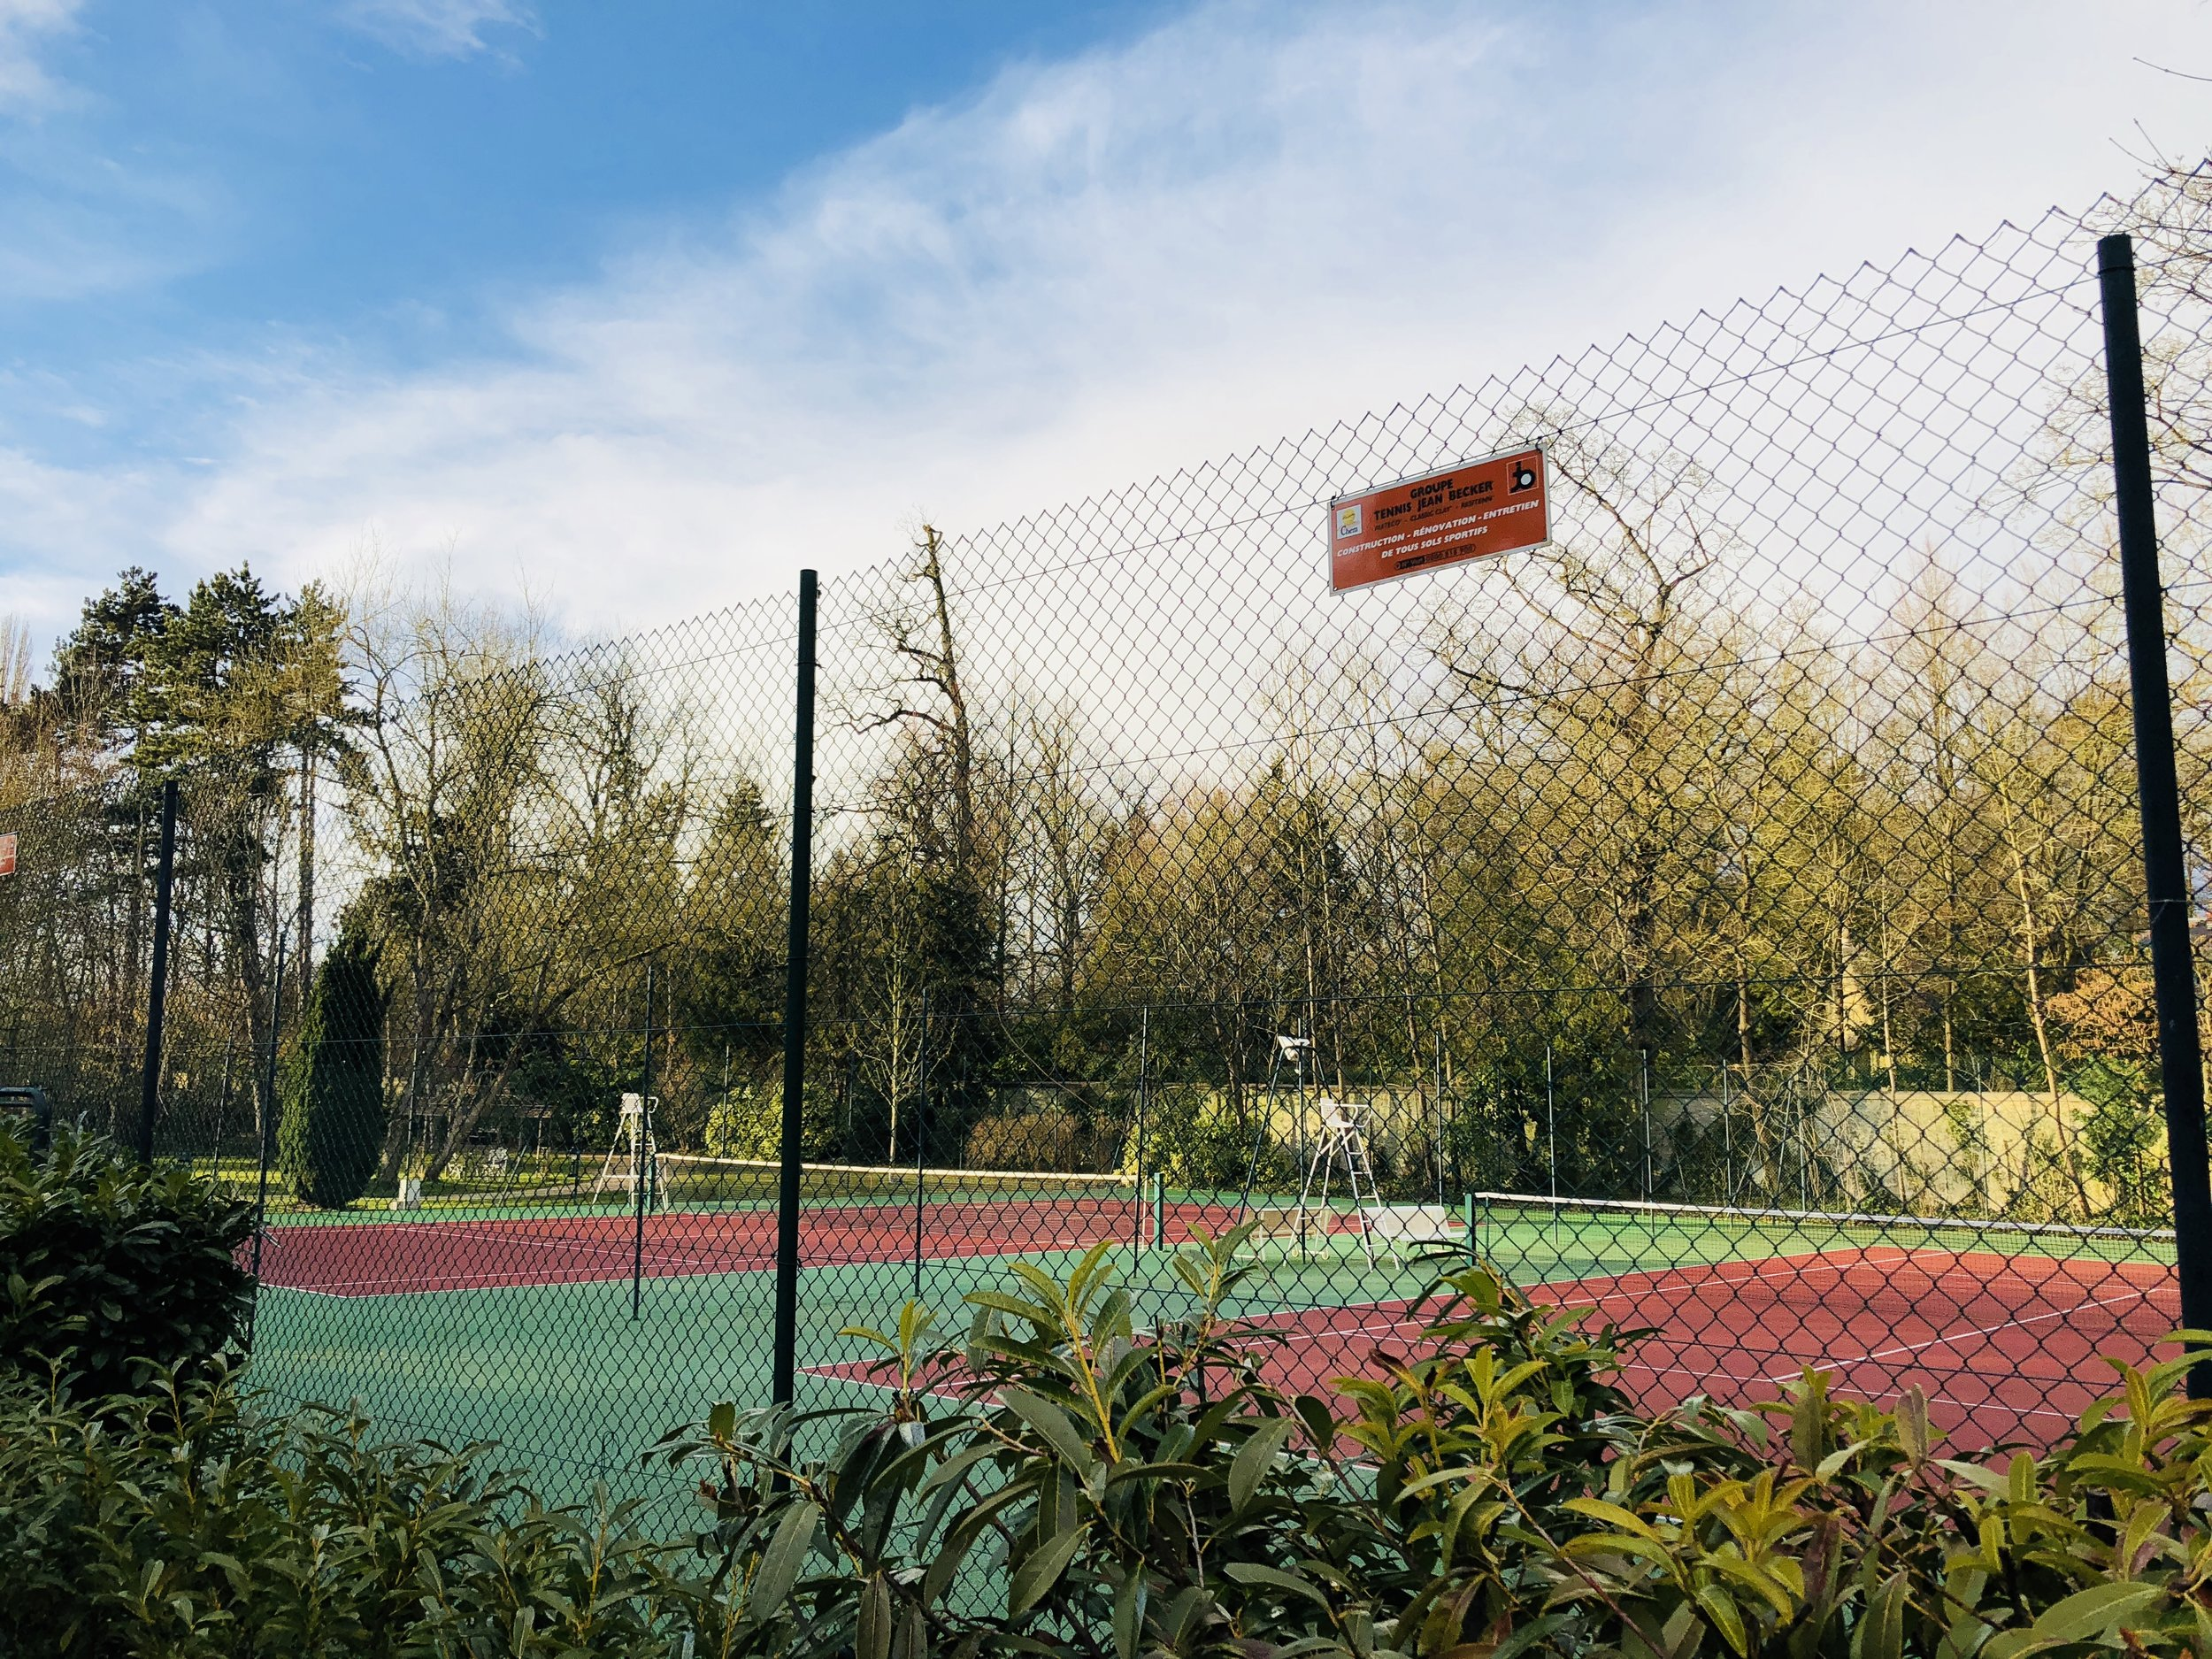 Tennis courts on the grounds